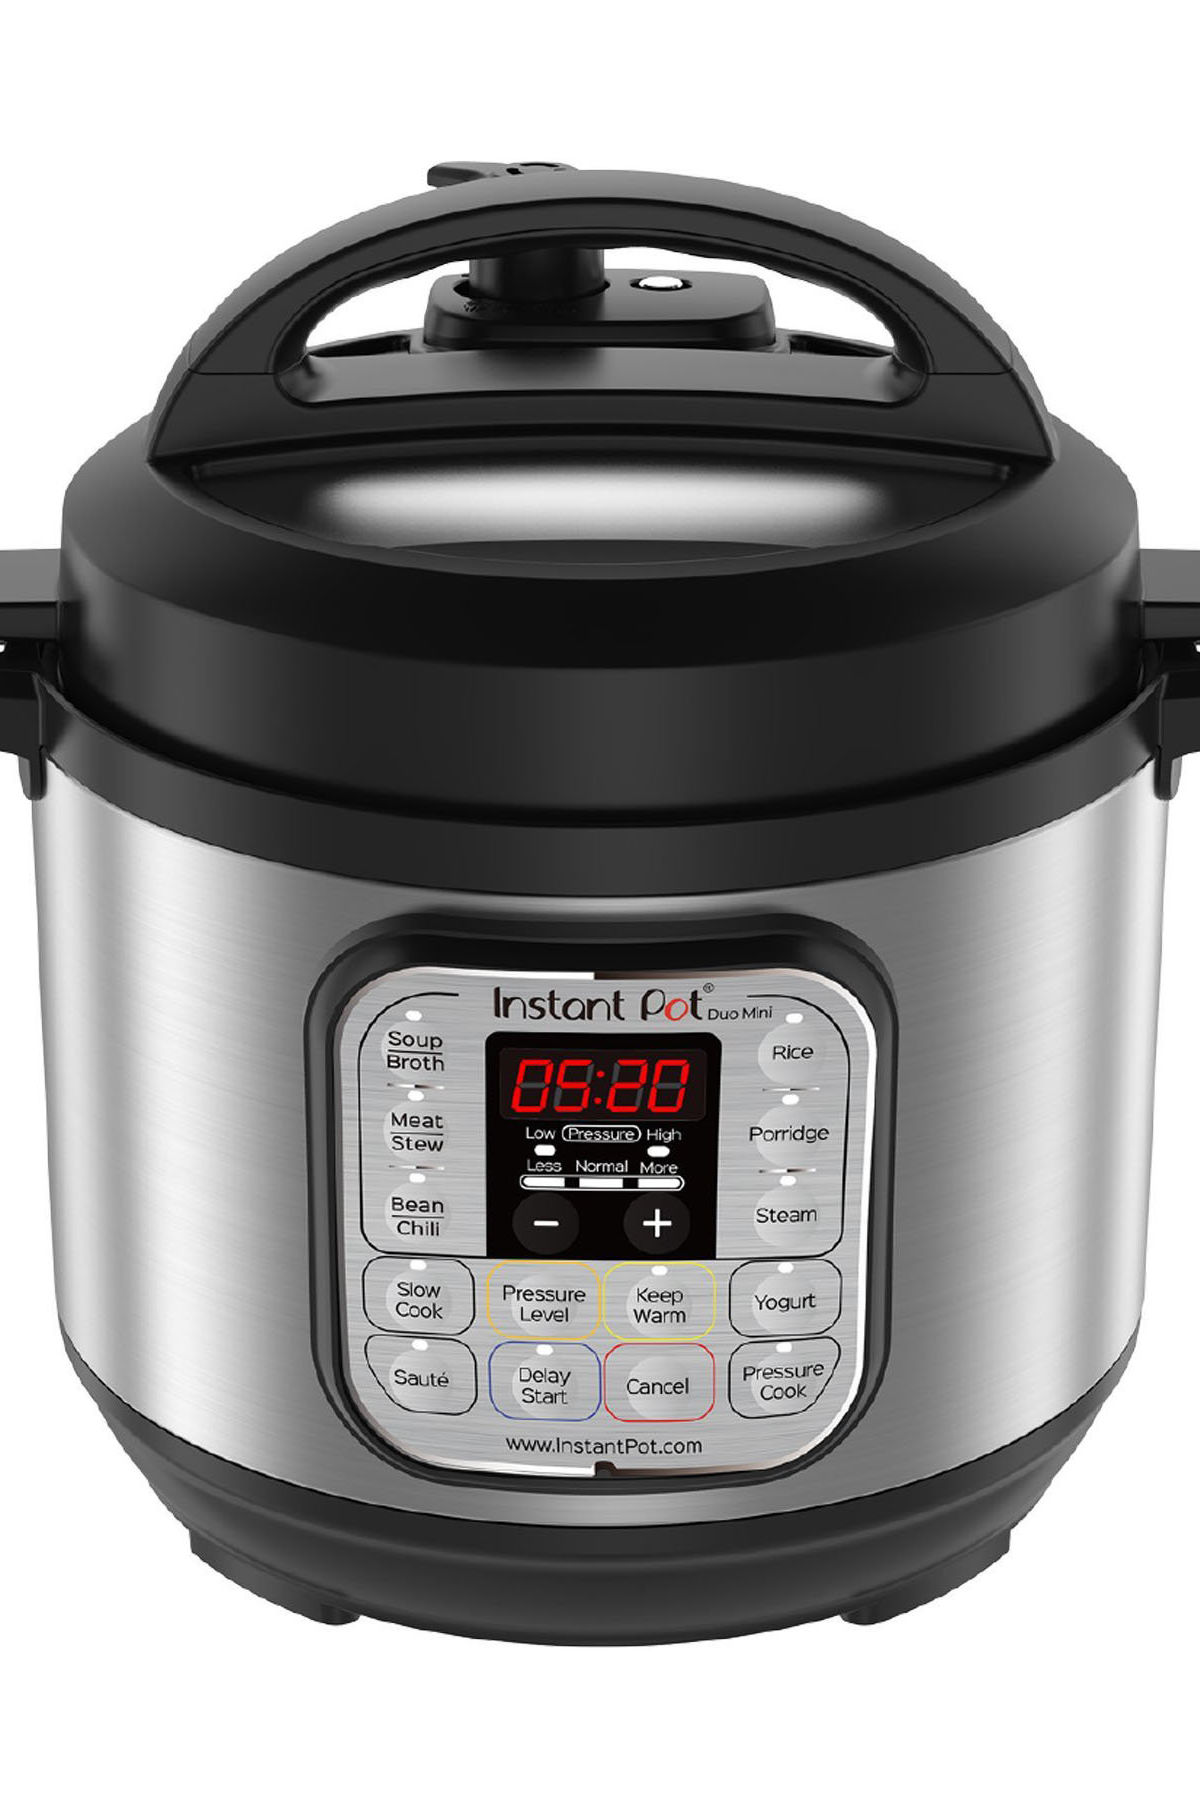 Kohl's Is Offering a Major Discount on the Instant Pot